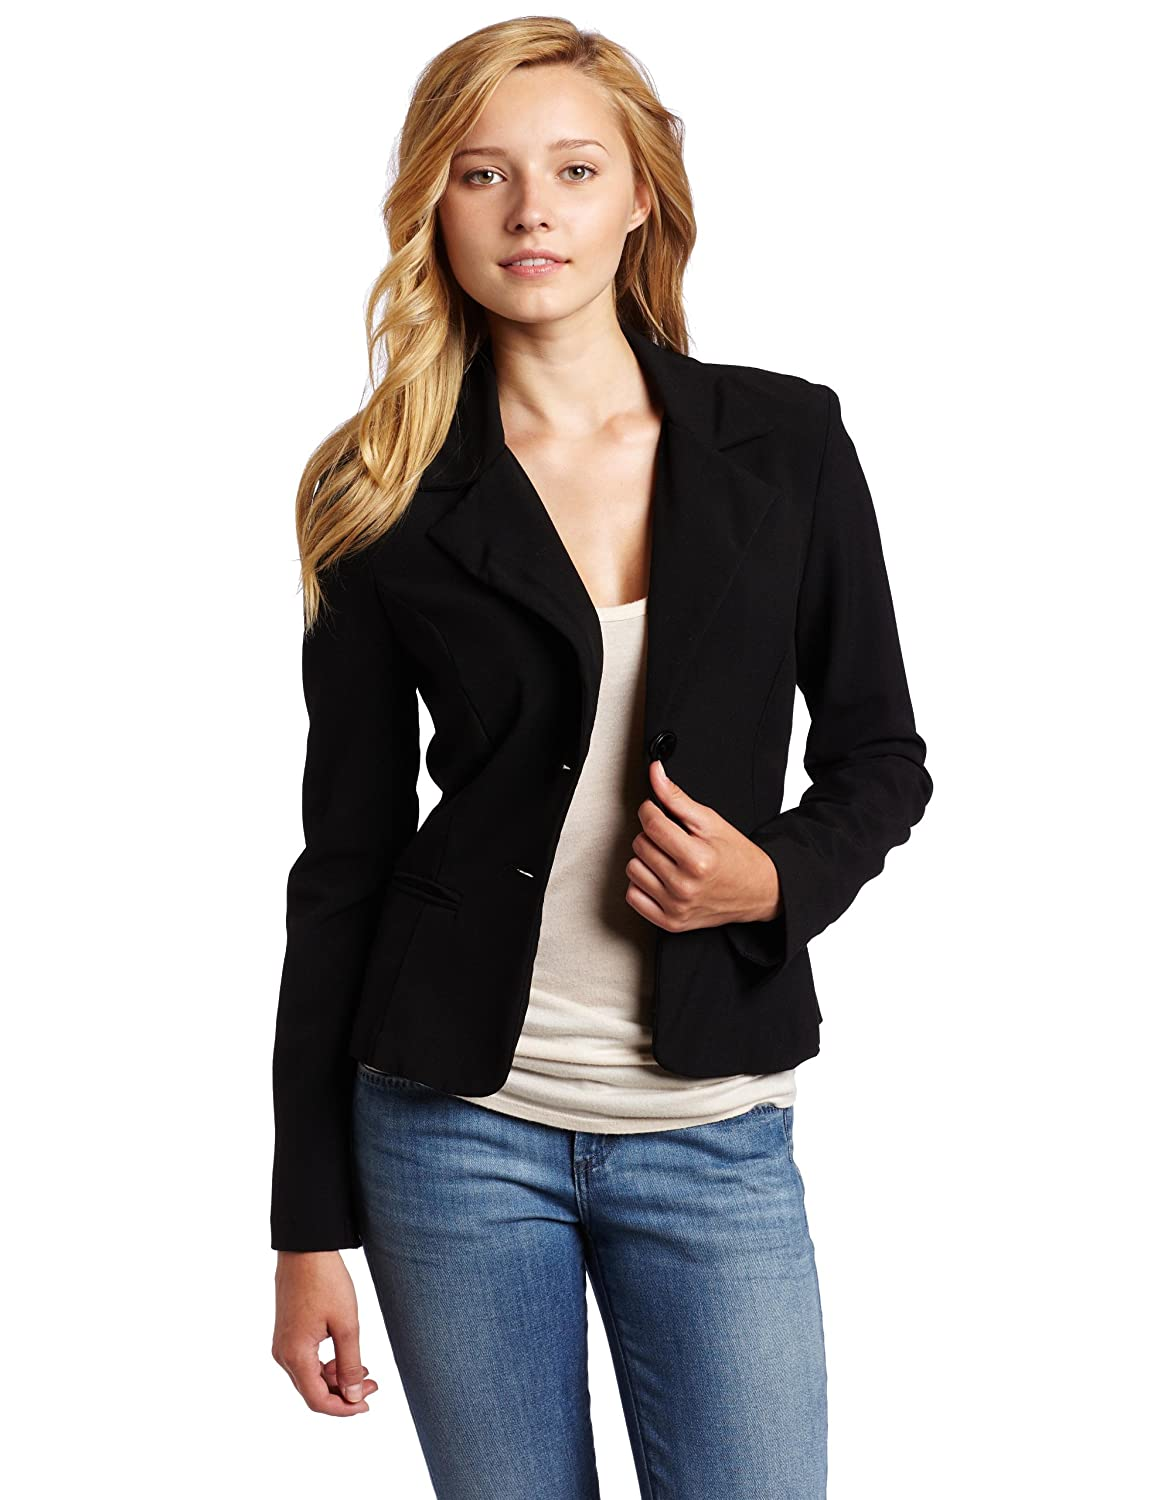 """Classic blazers come in all colors, cuts, and styles. Cool and comfortable, these lightweight jackets are a must-have in every wardrobe. ModCloth has a vast collection of blazers that will be the key pieces you need for building a closet full of staples.""""."""